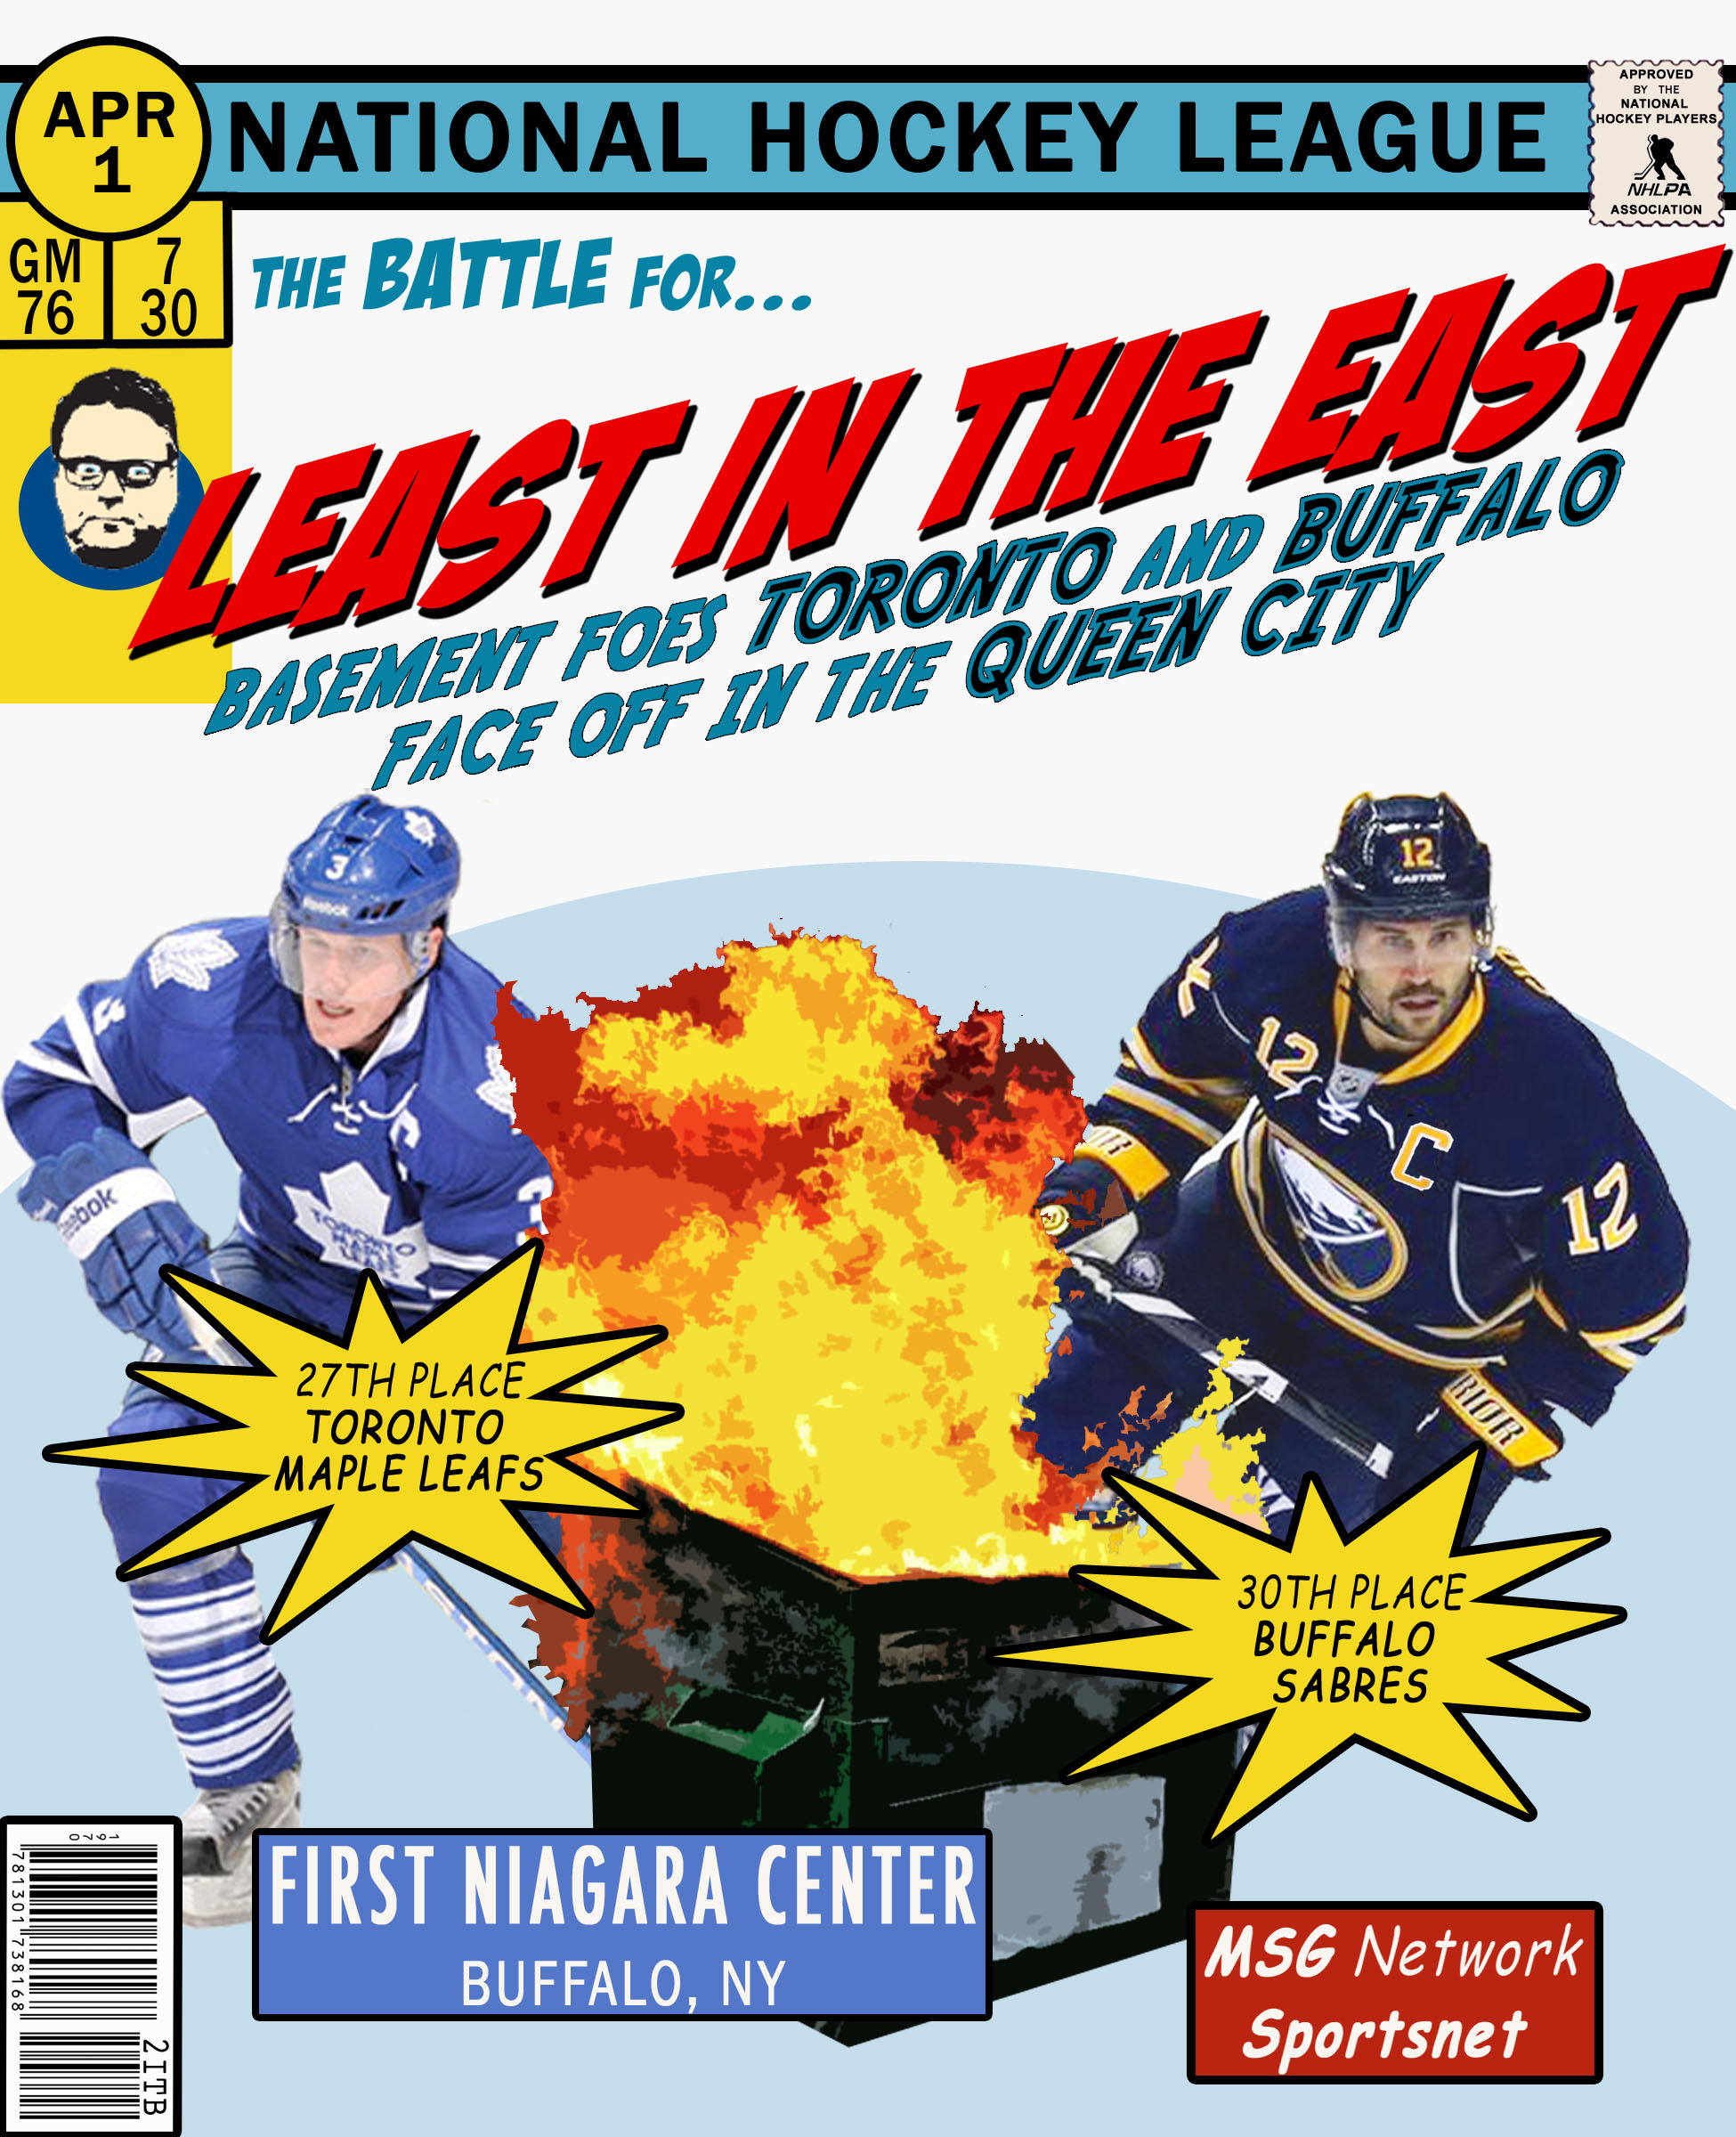 Sabres Gameday Poster Two In The Box